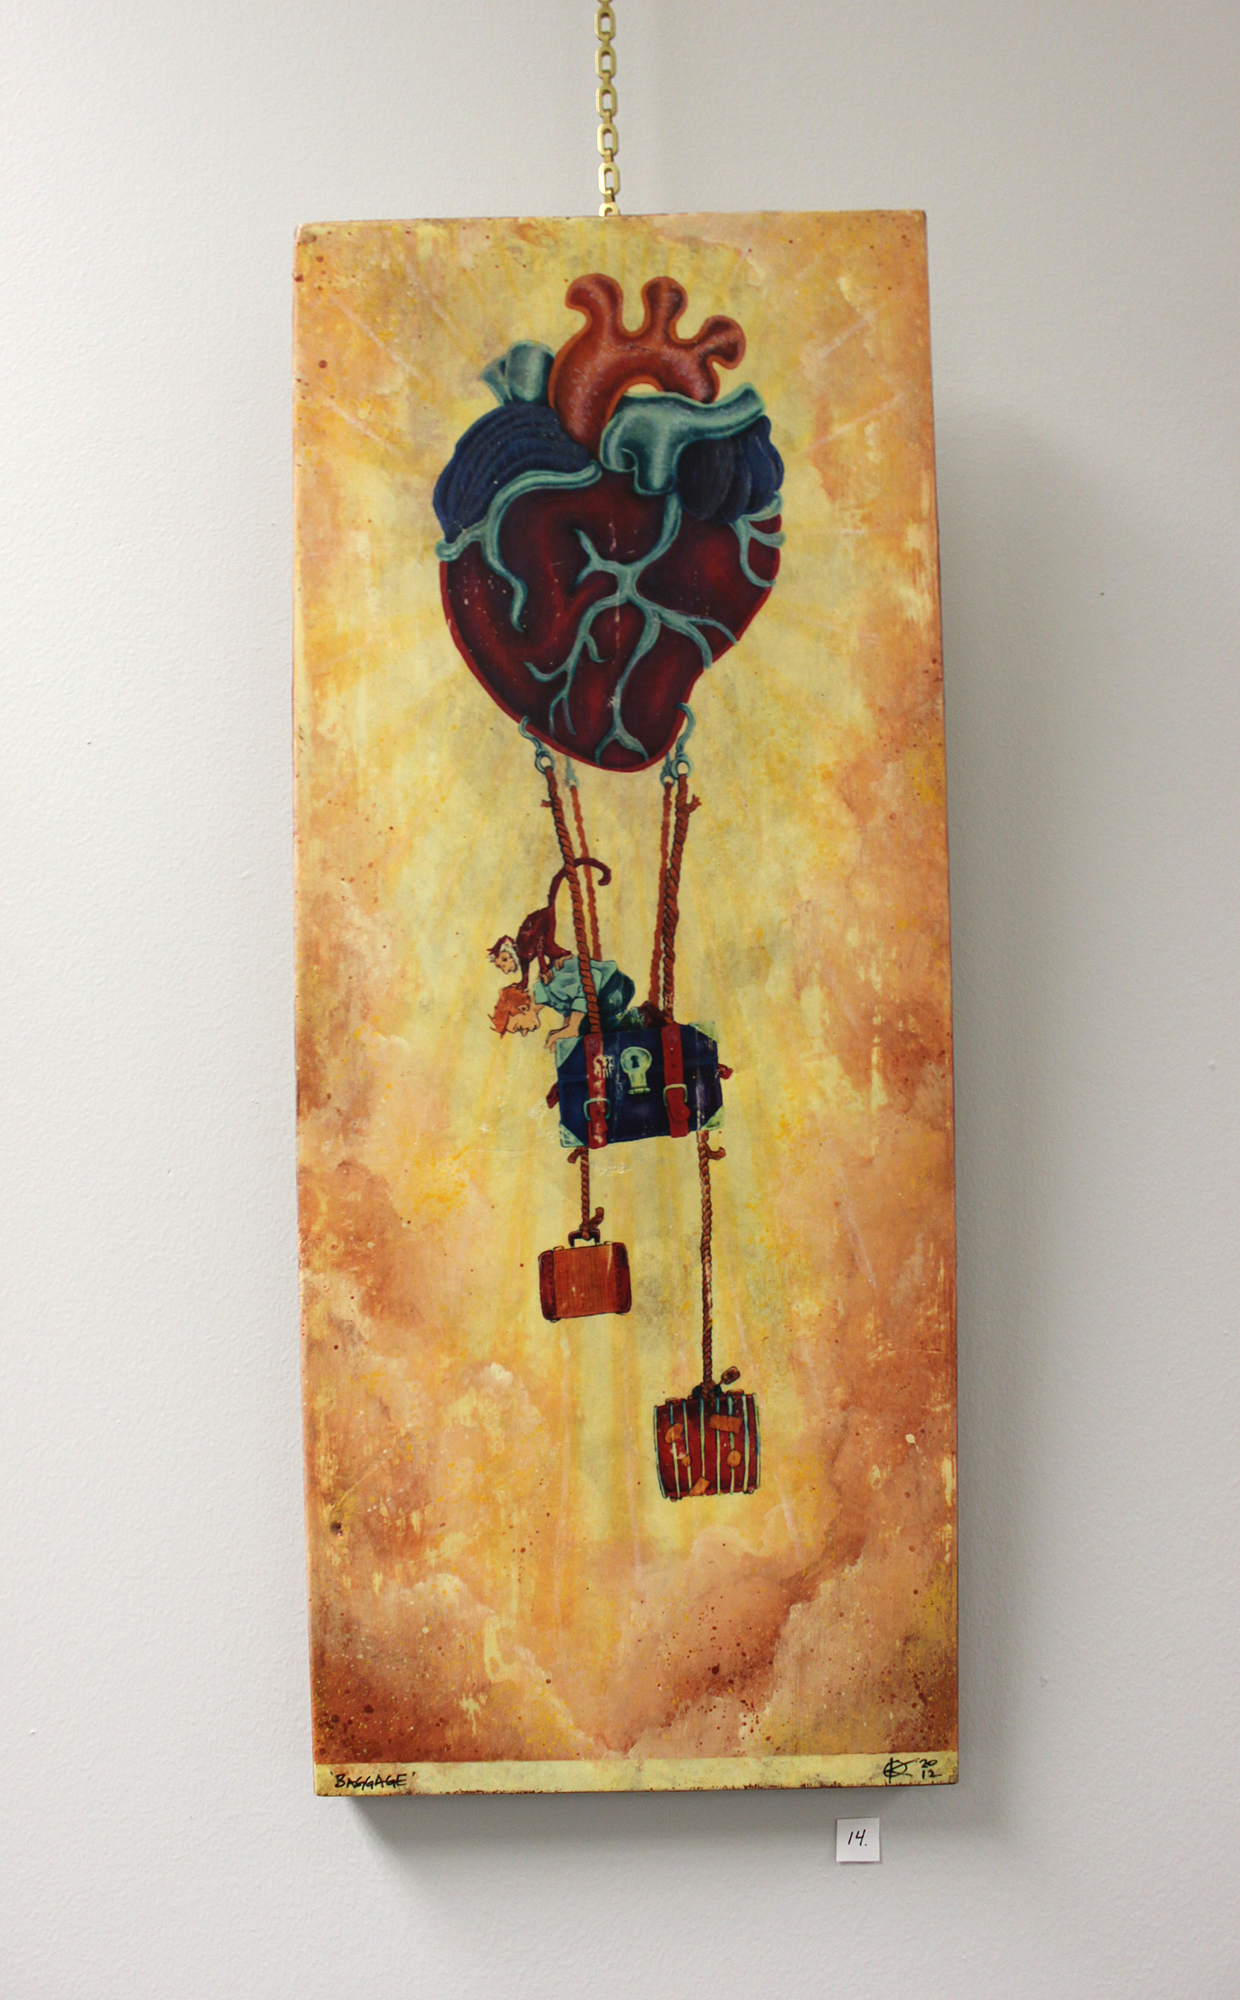 Baggage, Mixed Media, 2012 - Kent Smith, $200